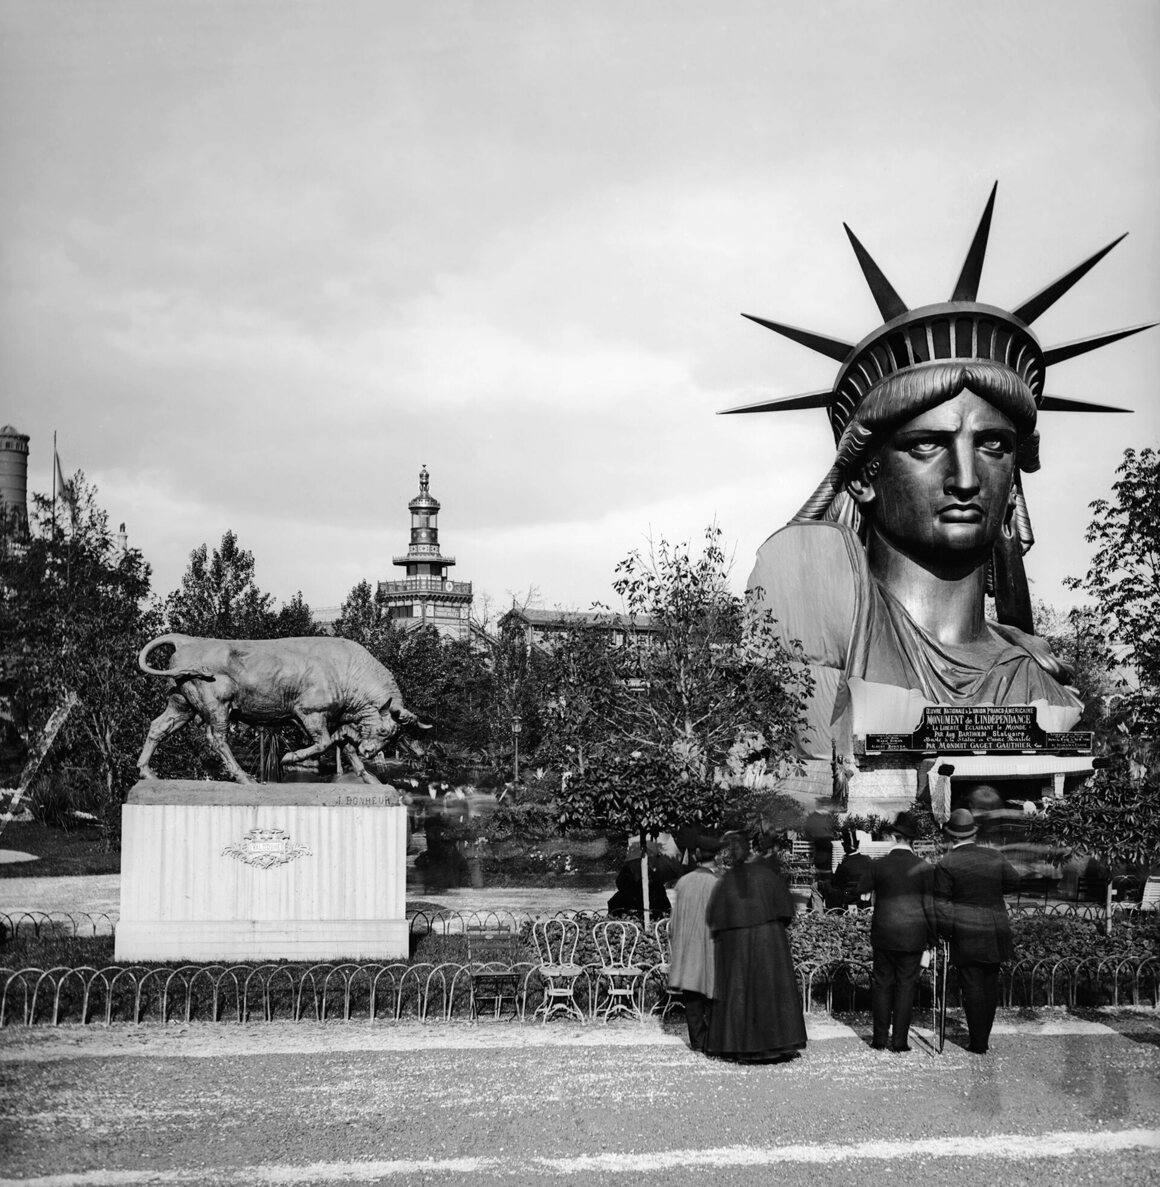 The head of the Statue of Liberty at the 1878 International Exposition in Paris.